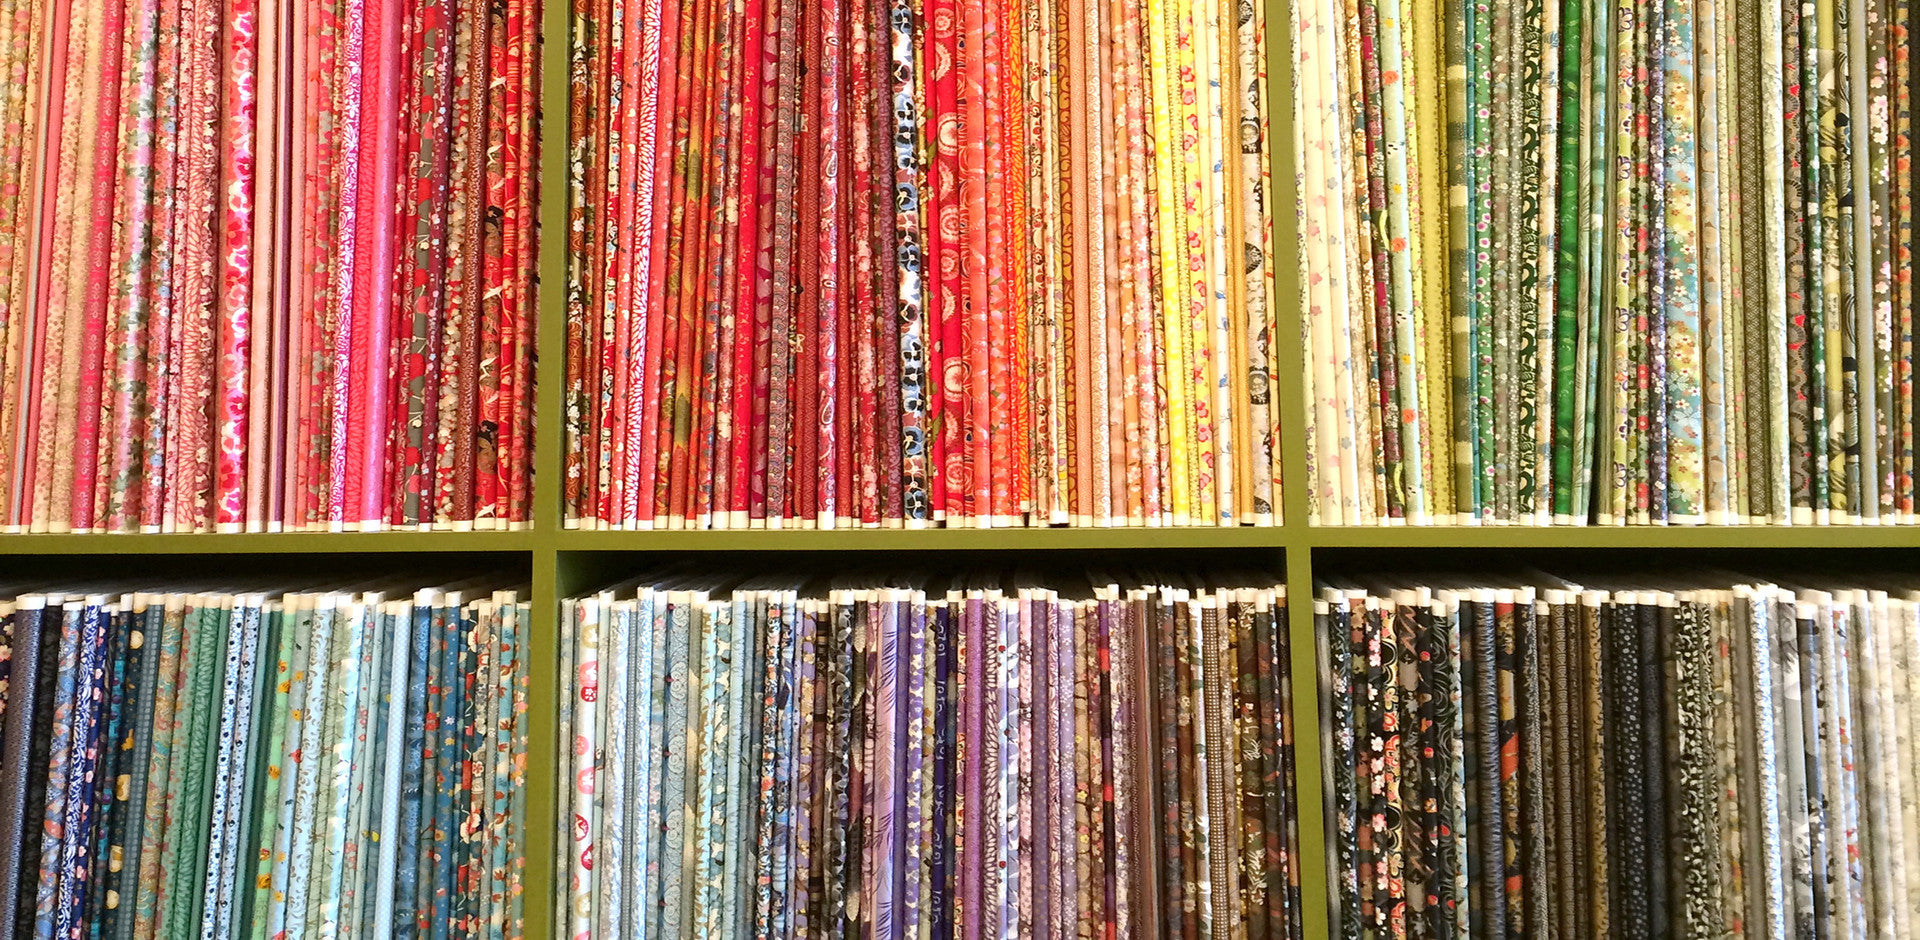 Chiyogami Paper - For Sale Online - Worldwide Shipping